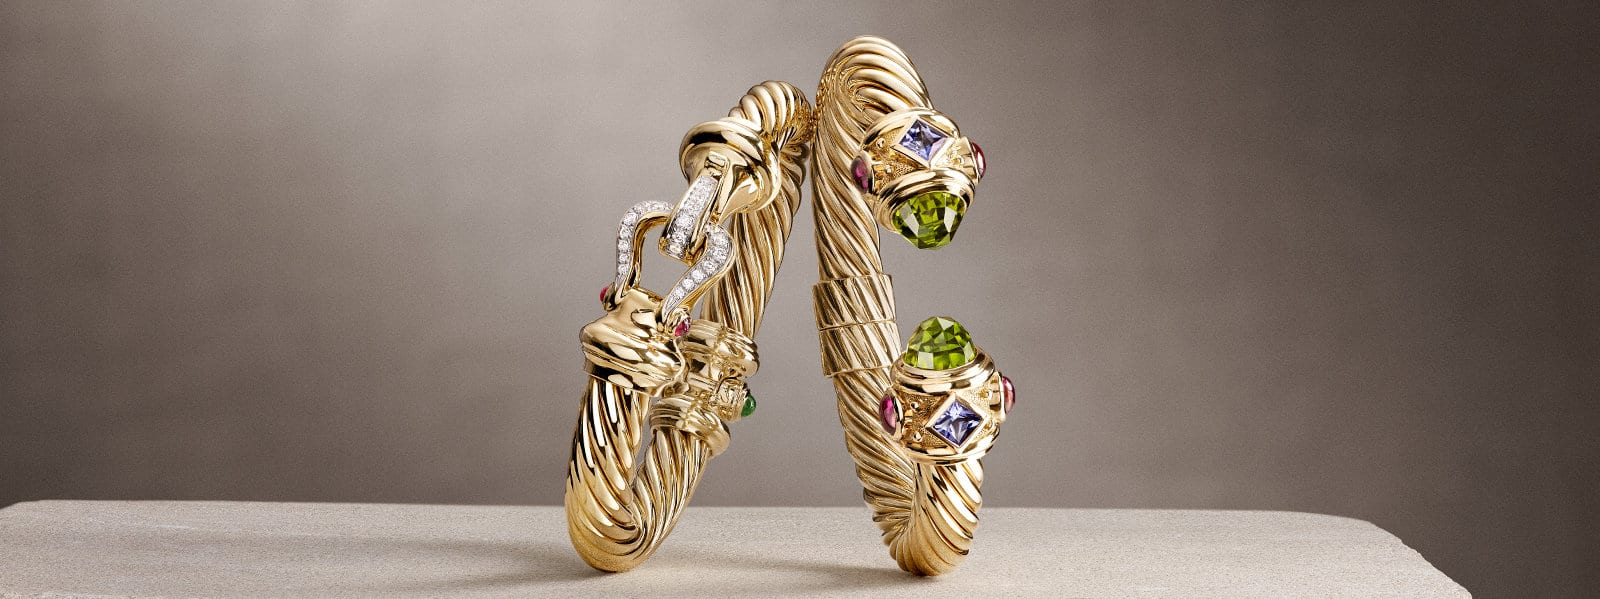 A Cable Buckle Collection® and Renaissance Collection bracelet in 18K yellow gold with diamonds and colored gemstones.